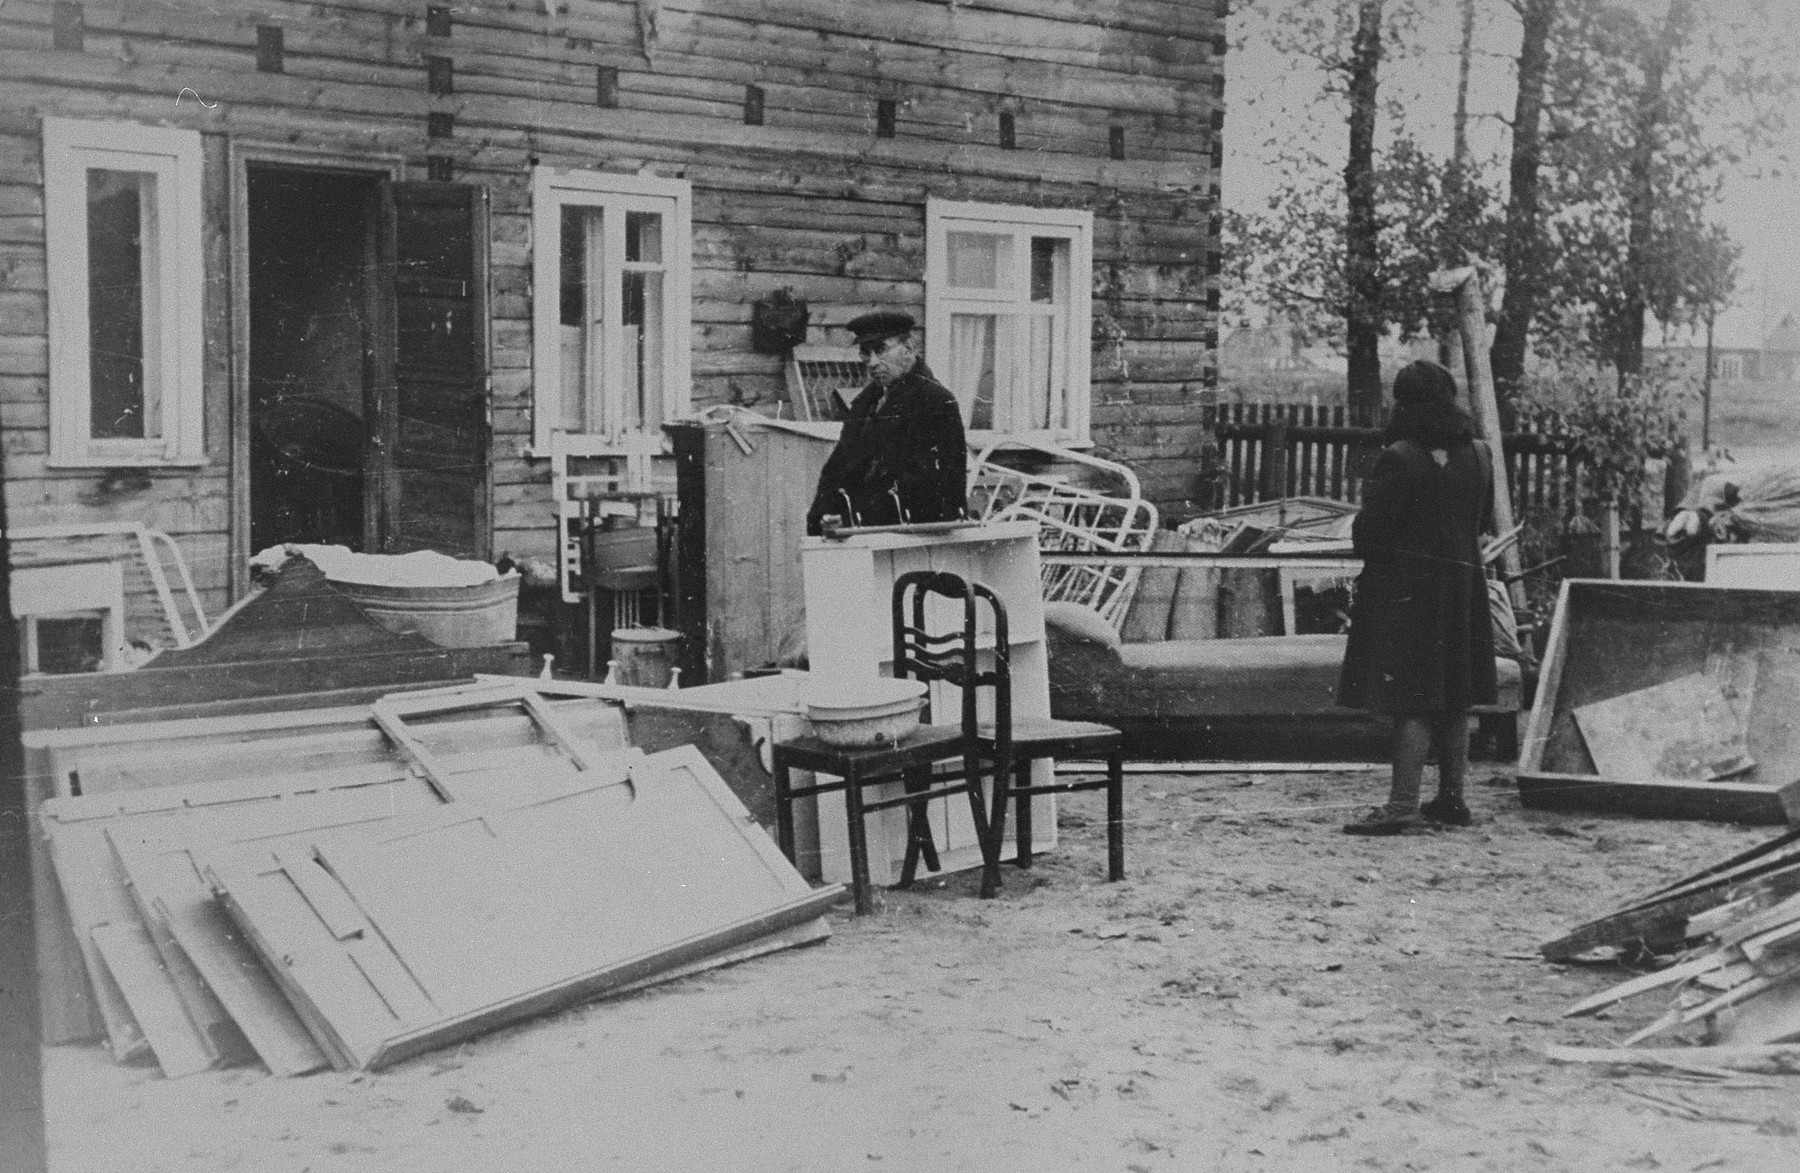 A Jew stands among disassembled furniture outside a house in the Kovno ghetto.